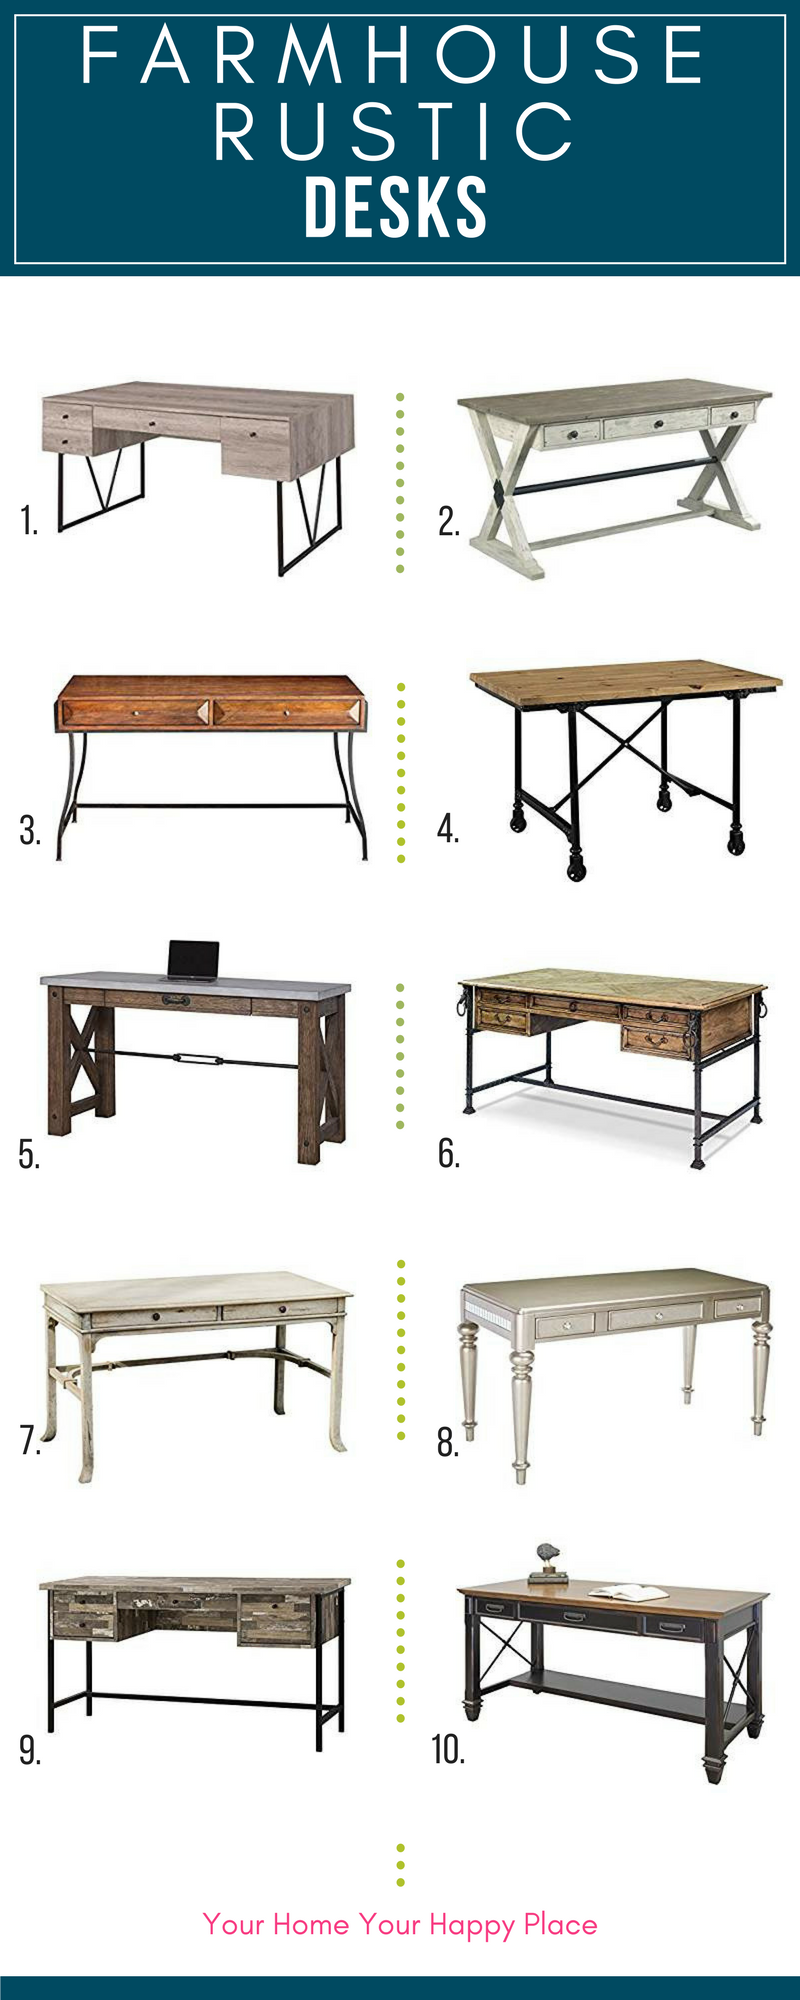 10 Farmhouse Rustic Desks for Your Home Office - Chatham Hill on the ...